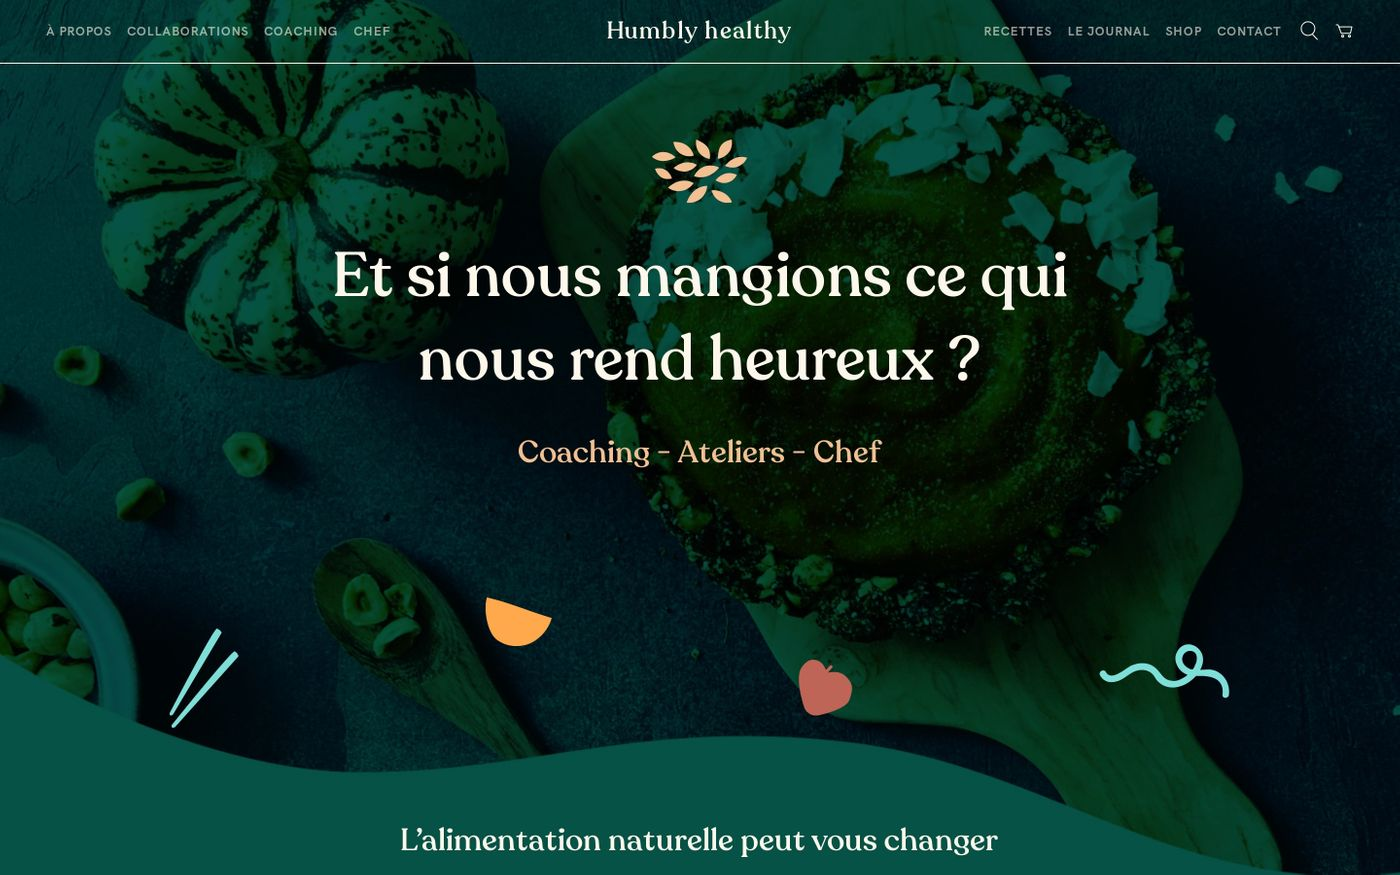 Screenshot of Humbly healthy website